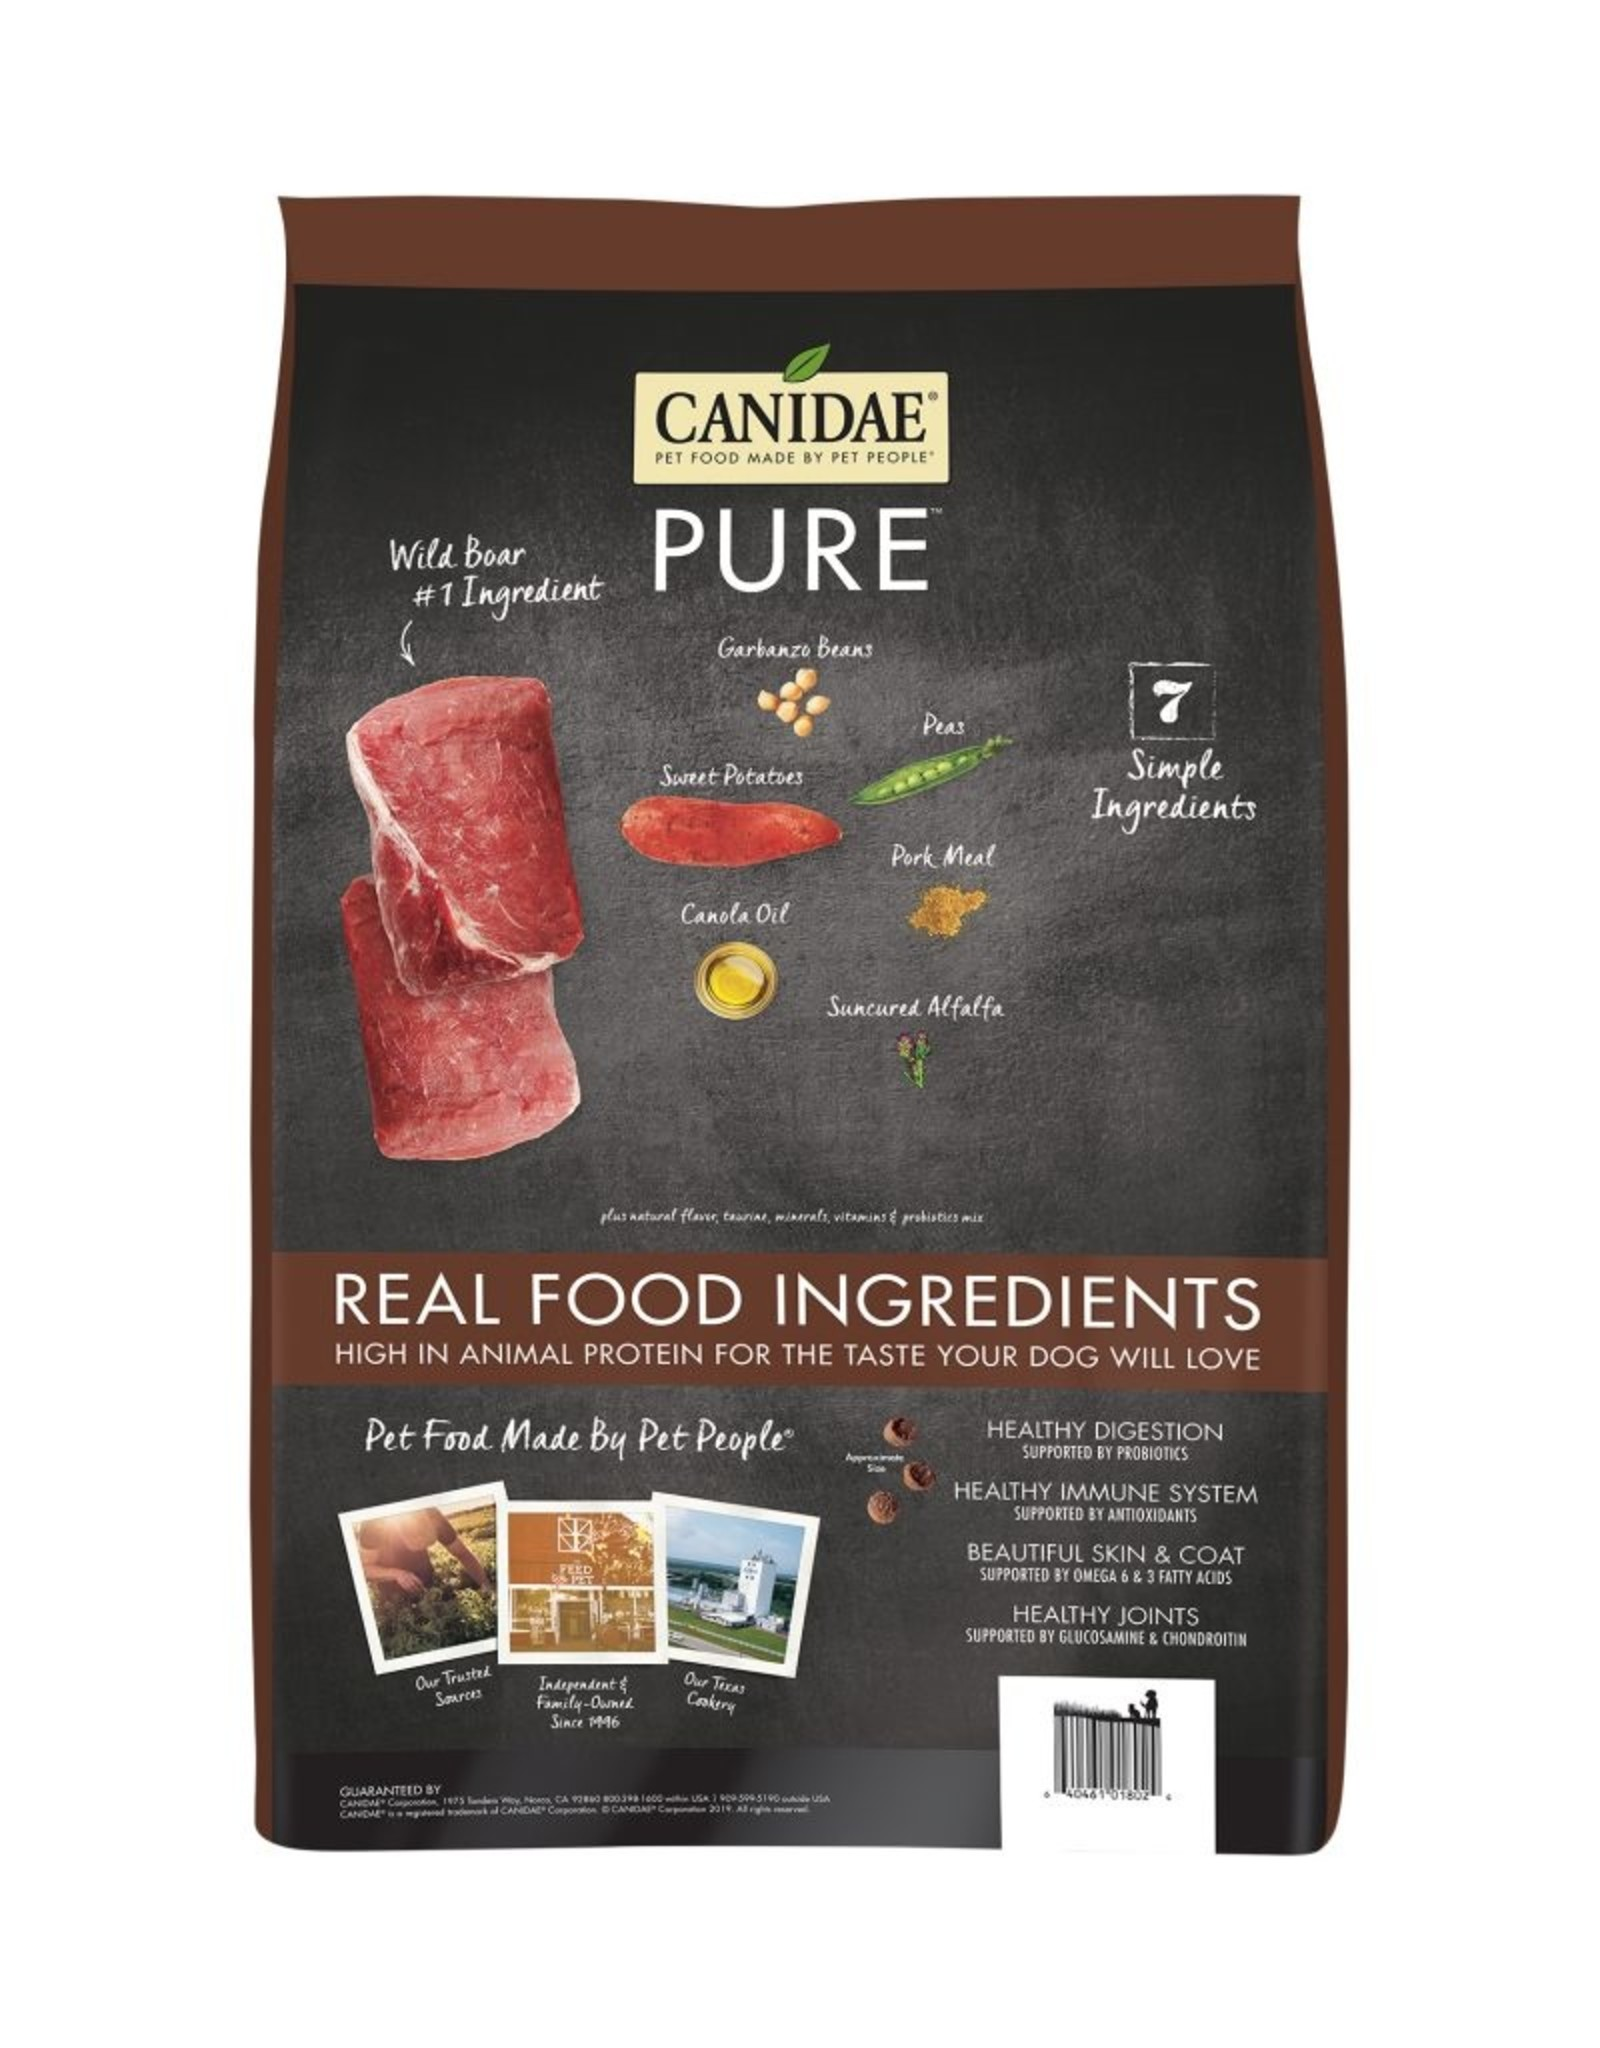 CANIDAE PET FOODS CANIDAE DOG GRAIN FREE PURE WILD BOAR 24LBS